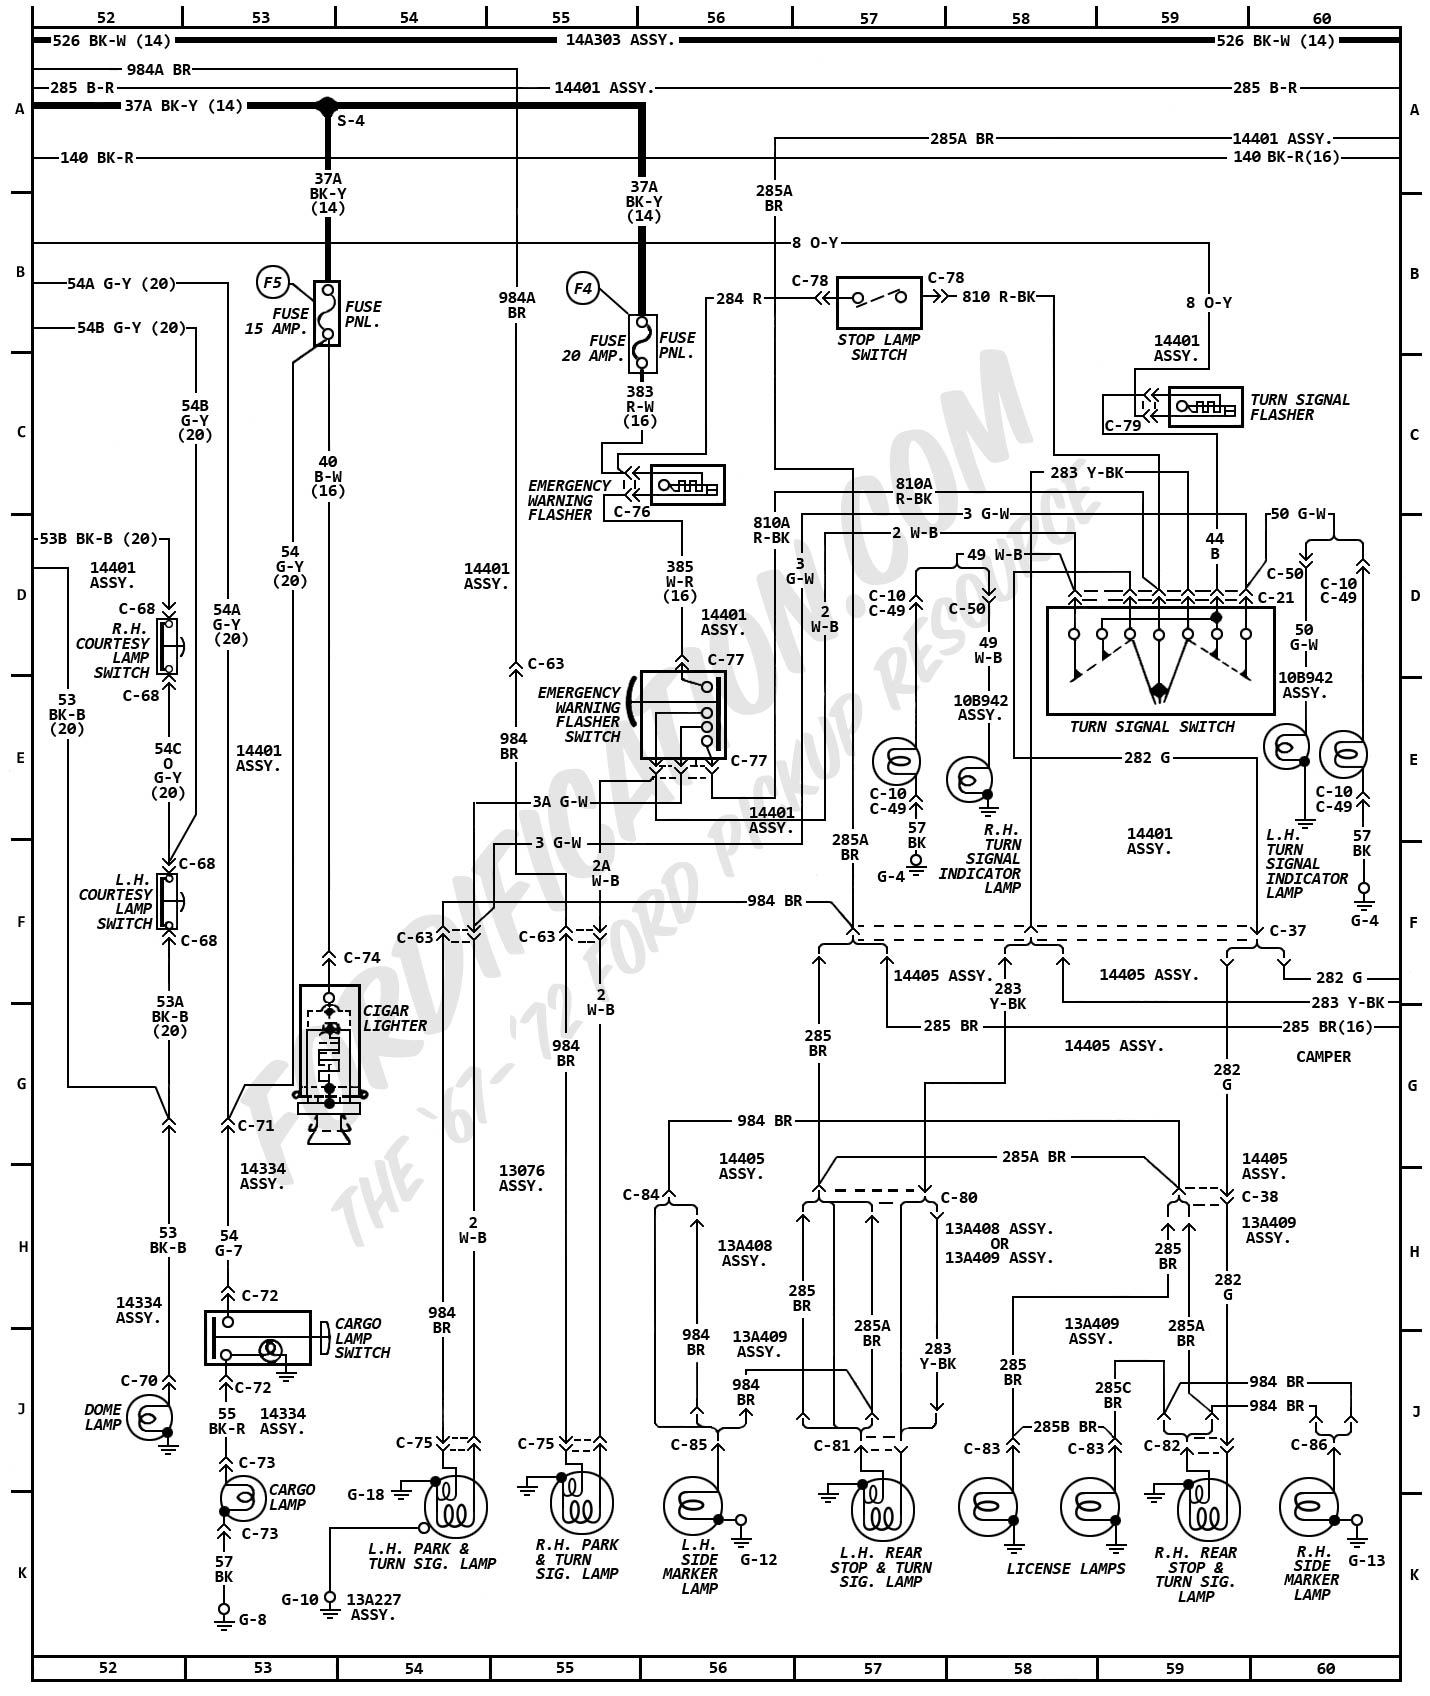 1974 Ford F 250 Wiper Switch Wiring Diagram Library 1968 F100 1972 Truck Diagrams Fordification Com Rh F250 1969